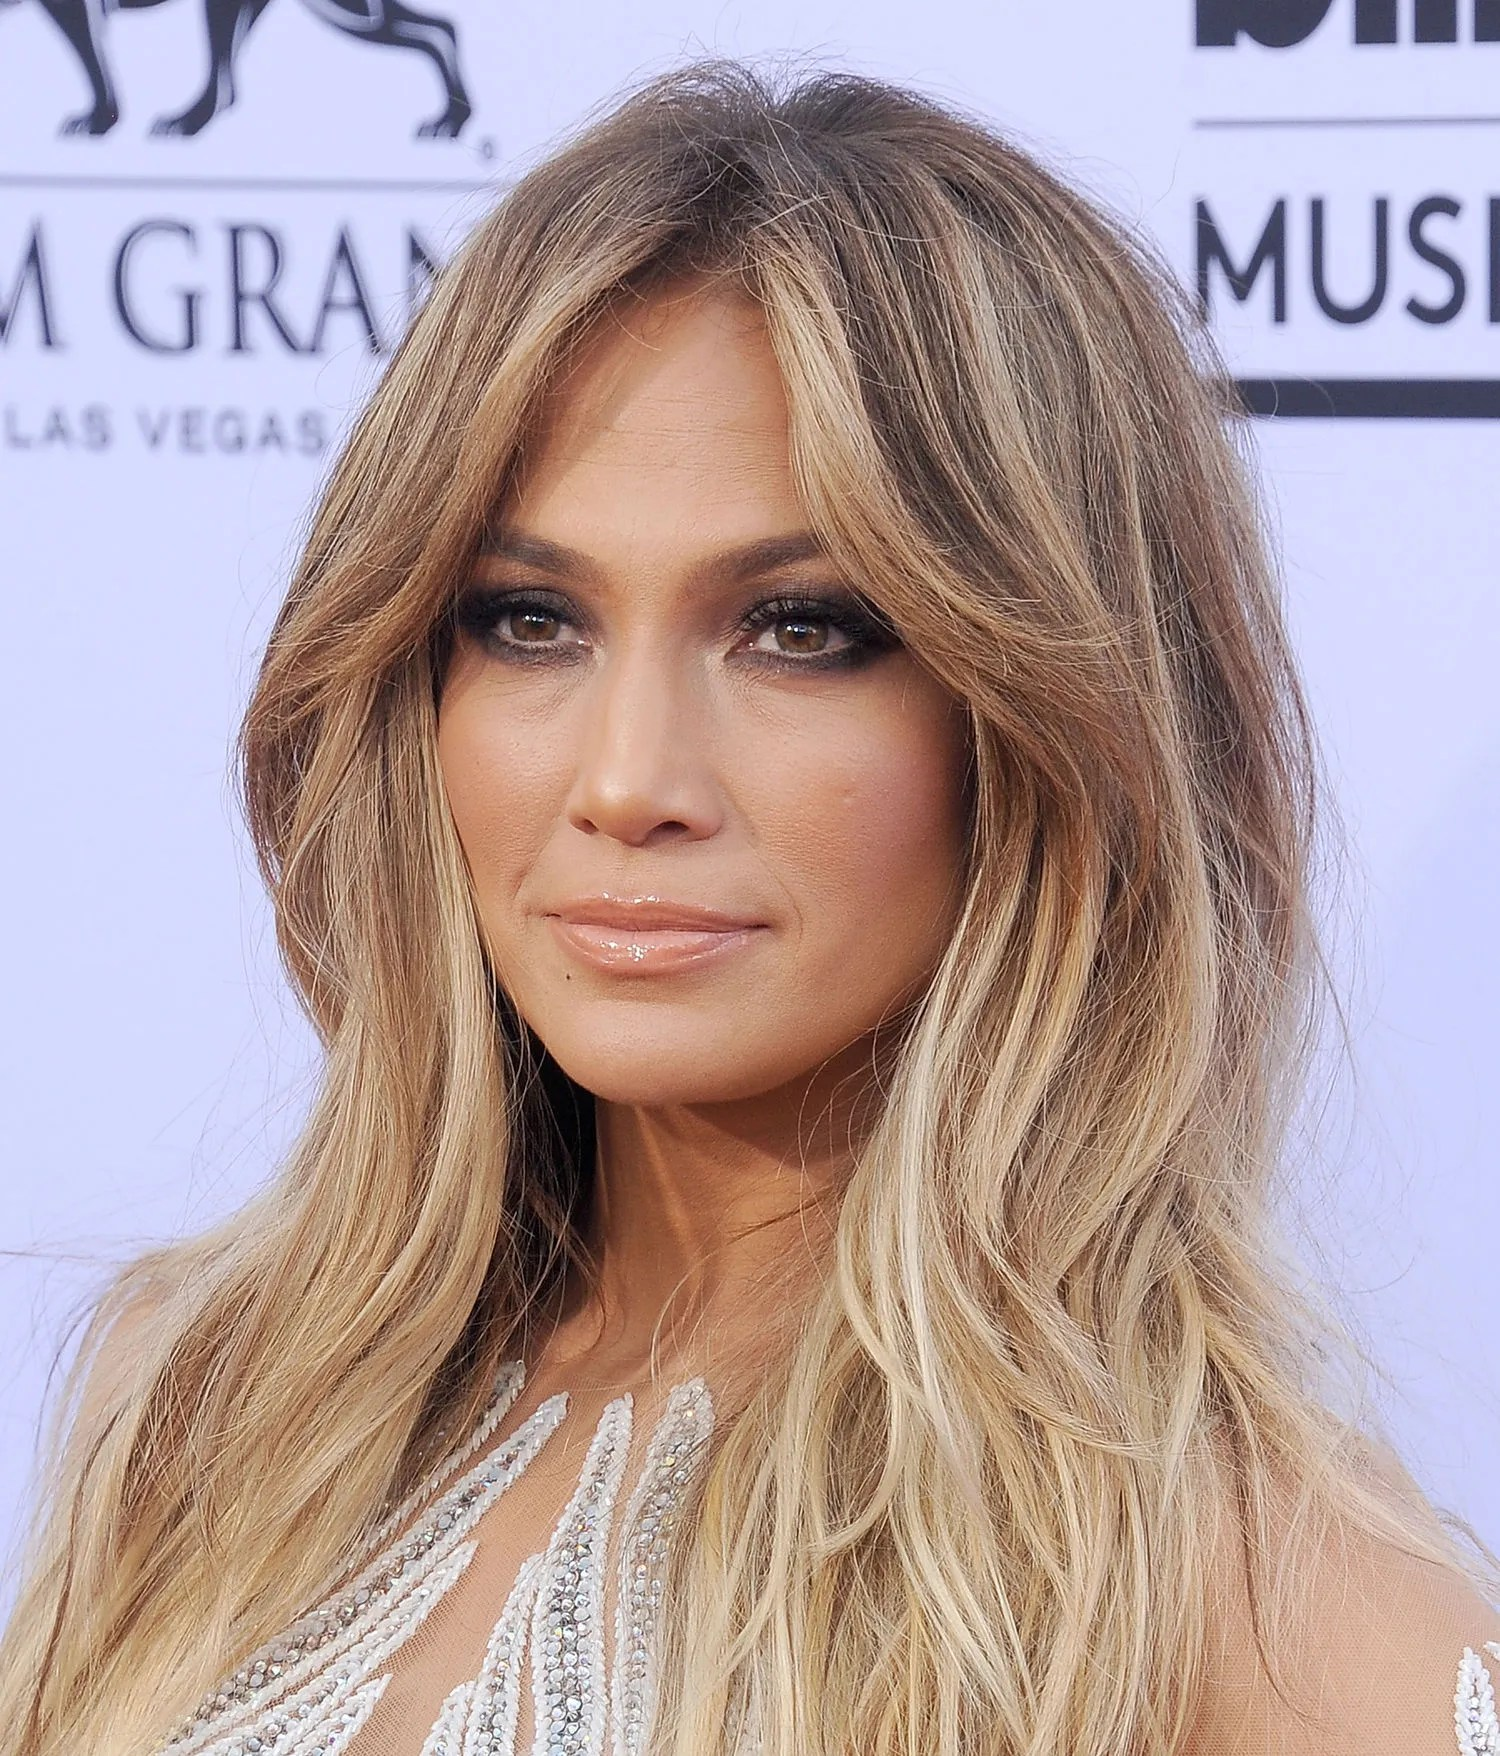 Haircut News Jennifer Lopez Chopped Her Hair f Into a Short Style